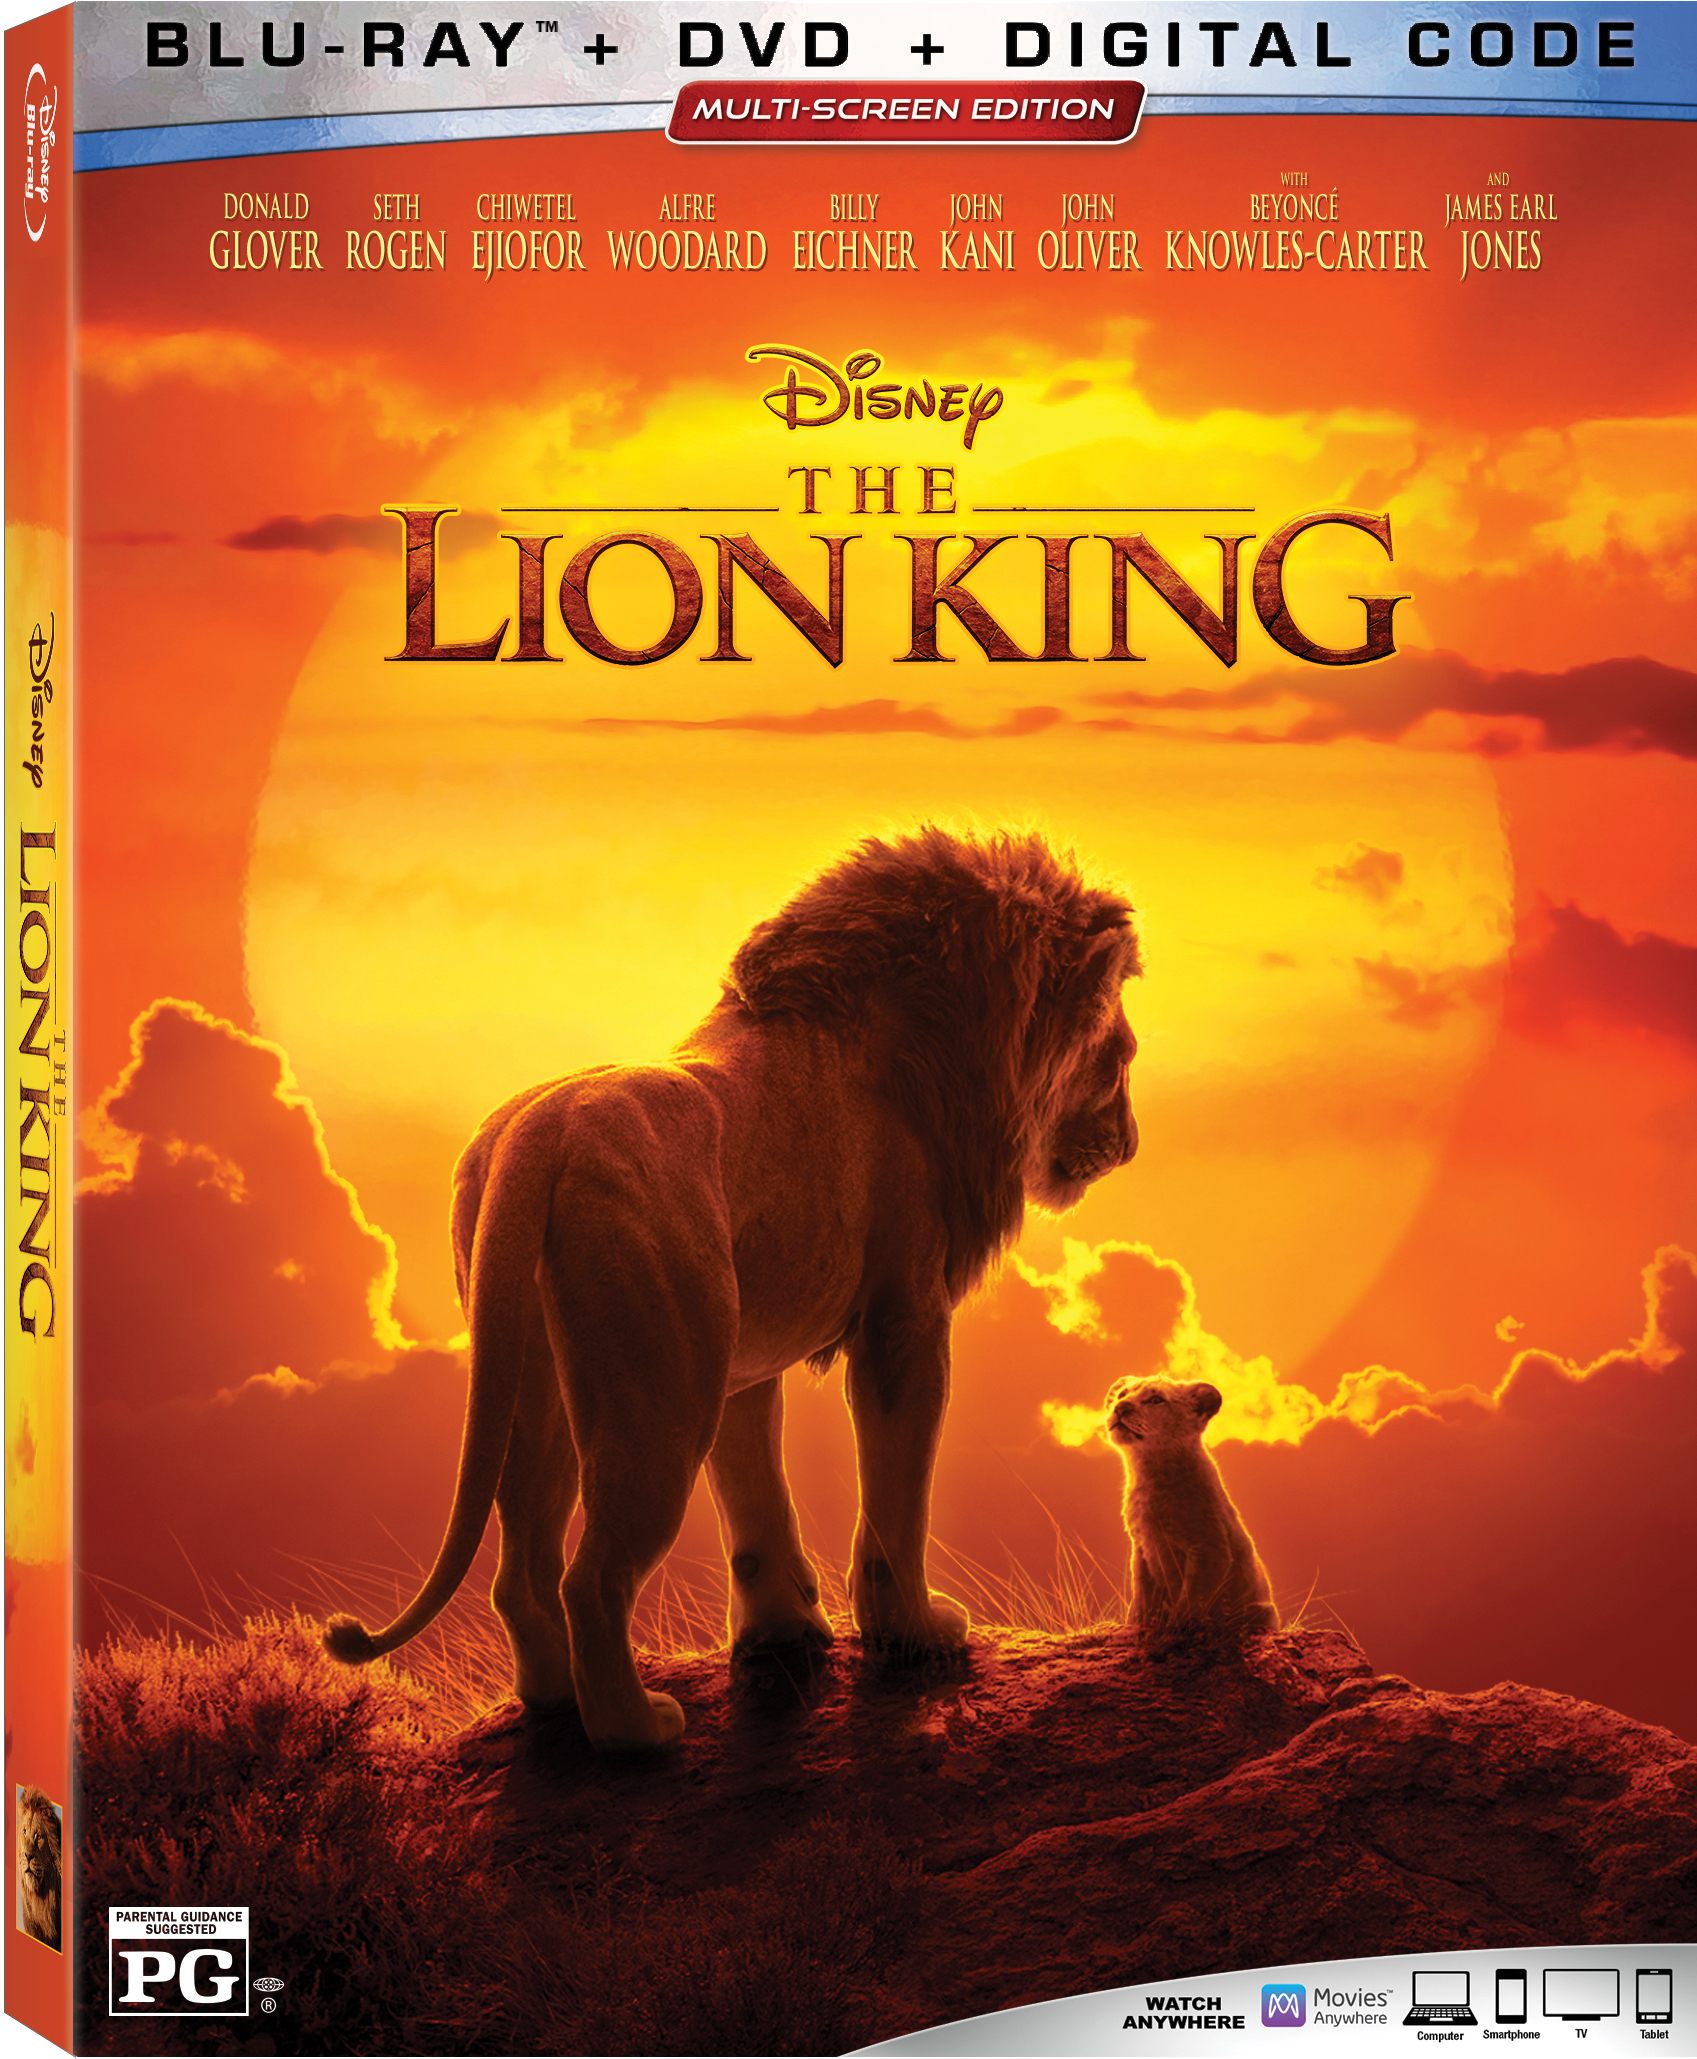 The Lion King Available To Own Now